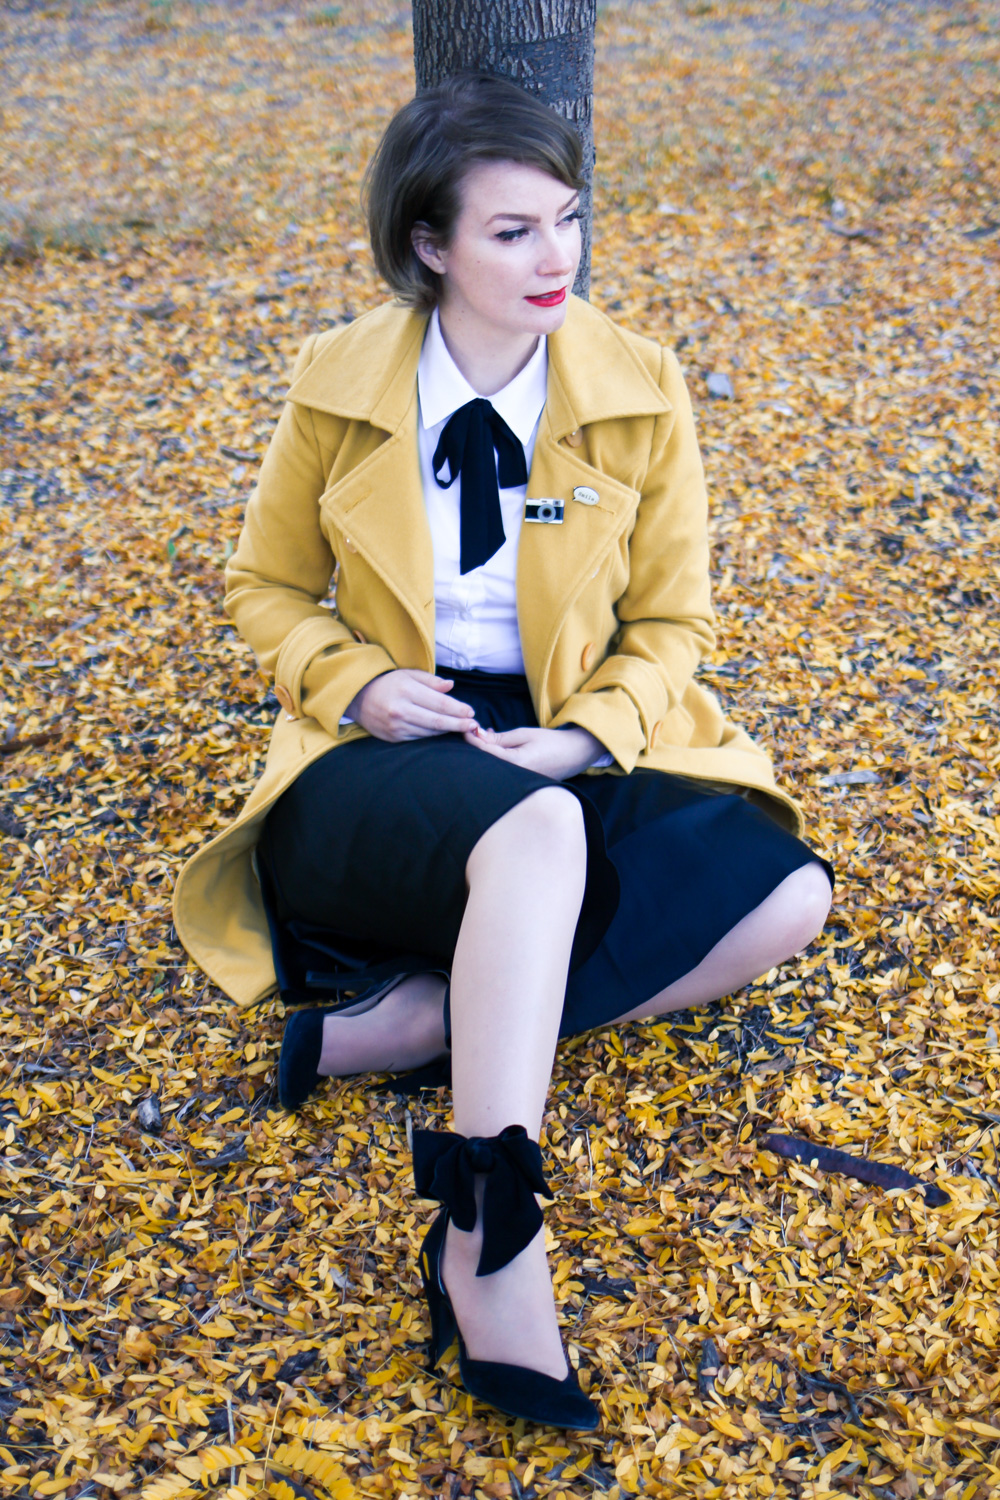 @findingfemme wears mustard coat with bok bok b'gerk brooch and neck tie.